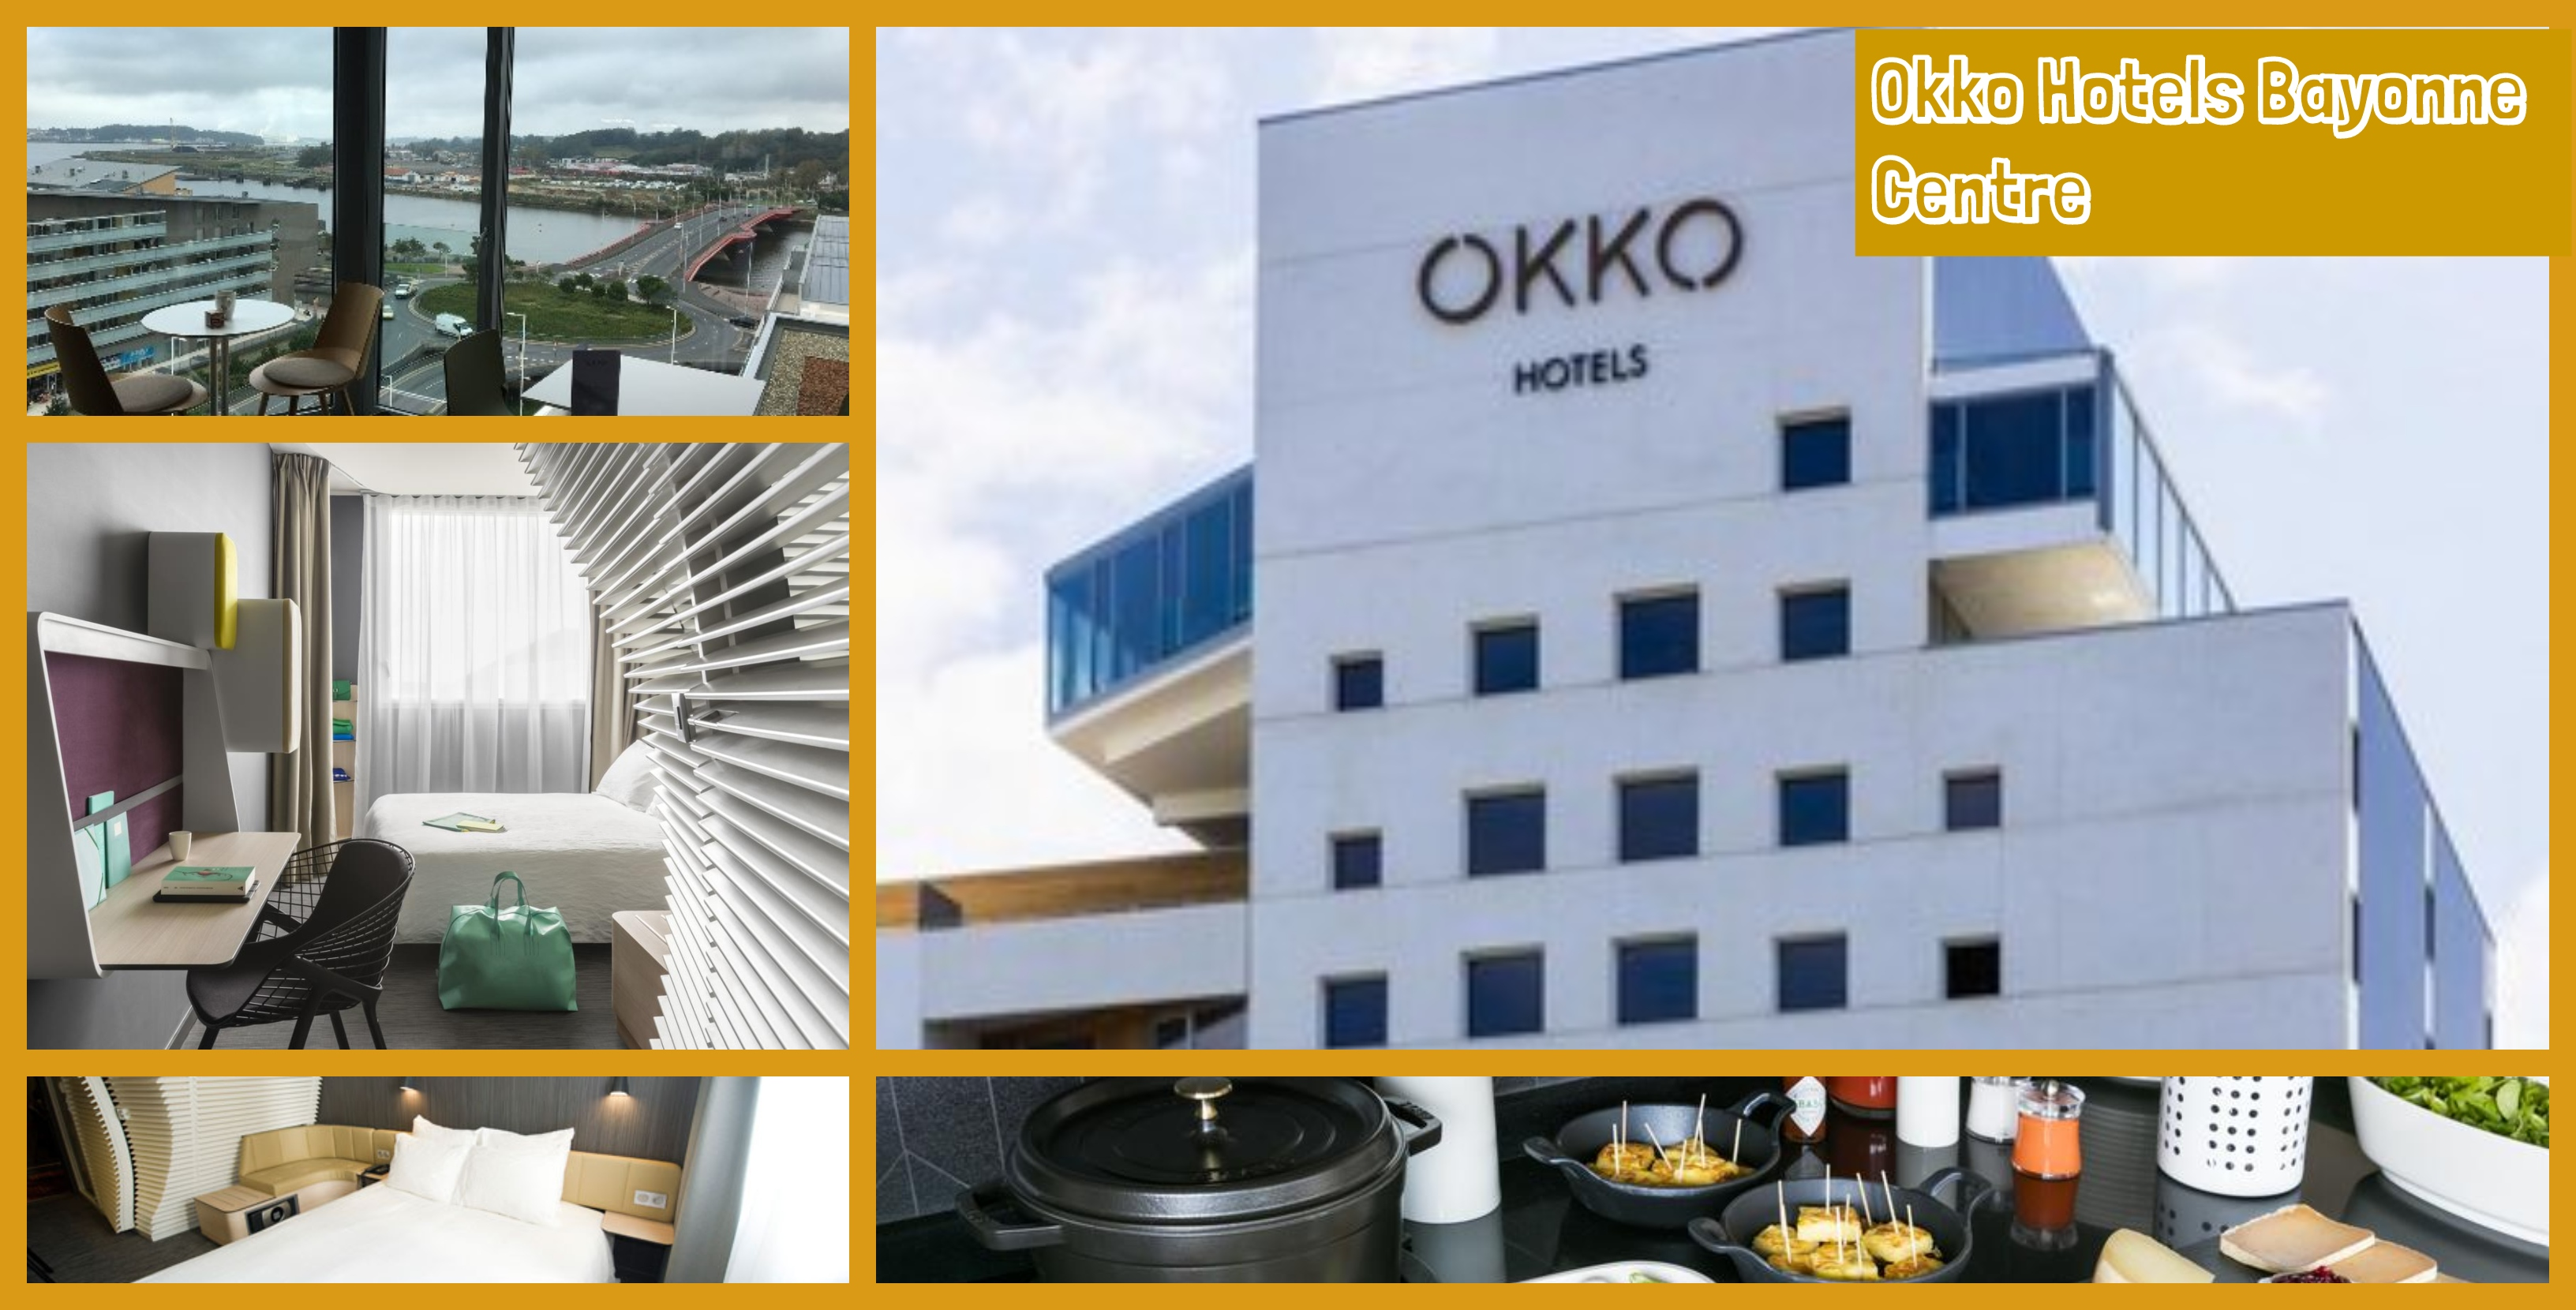 Image of Okko Hotels Bayonne Centre